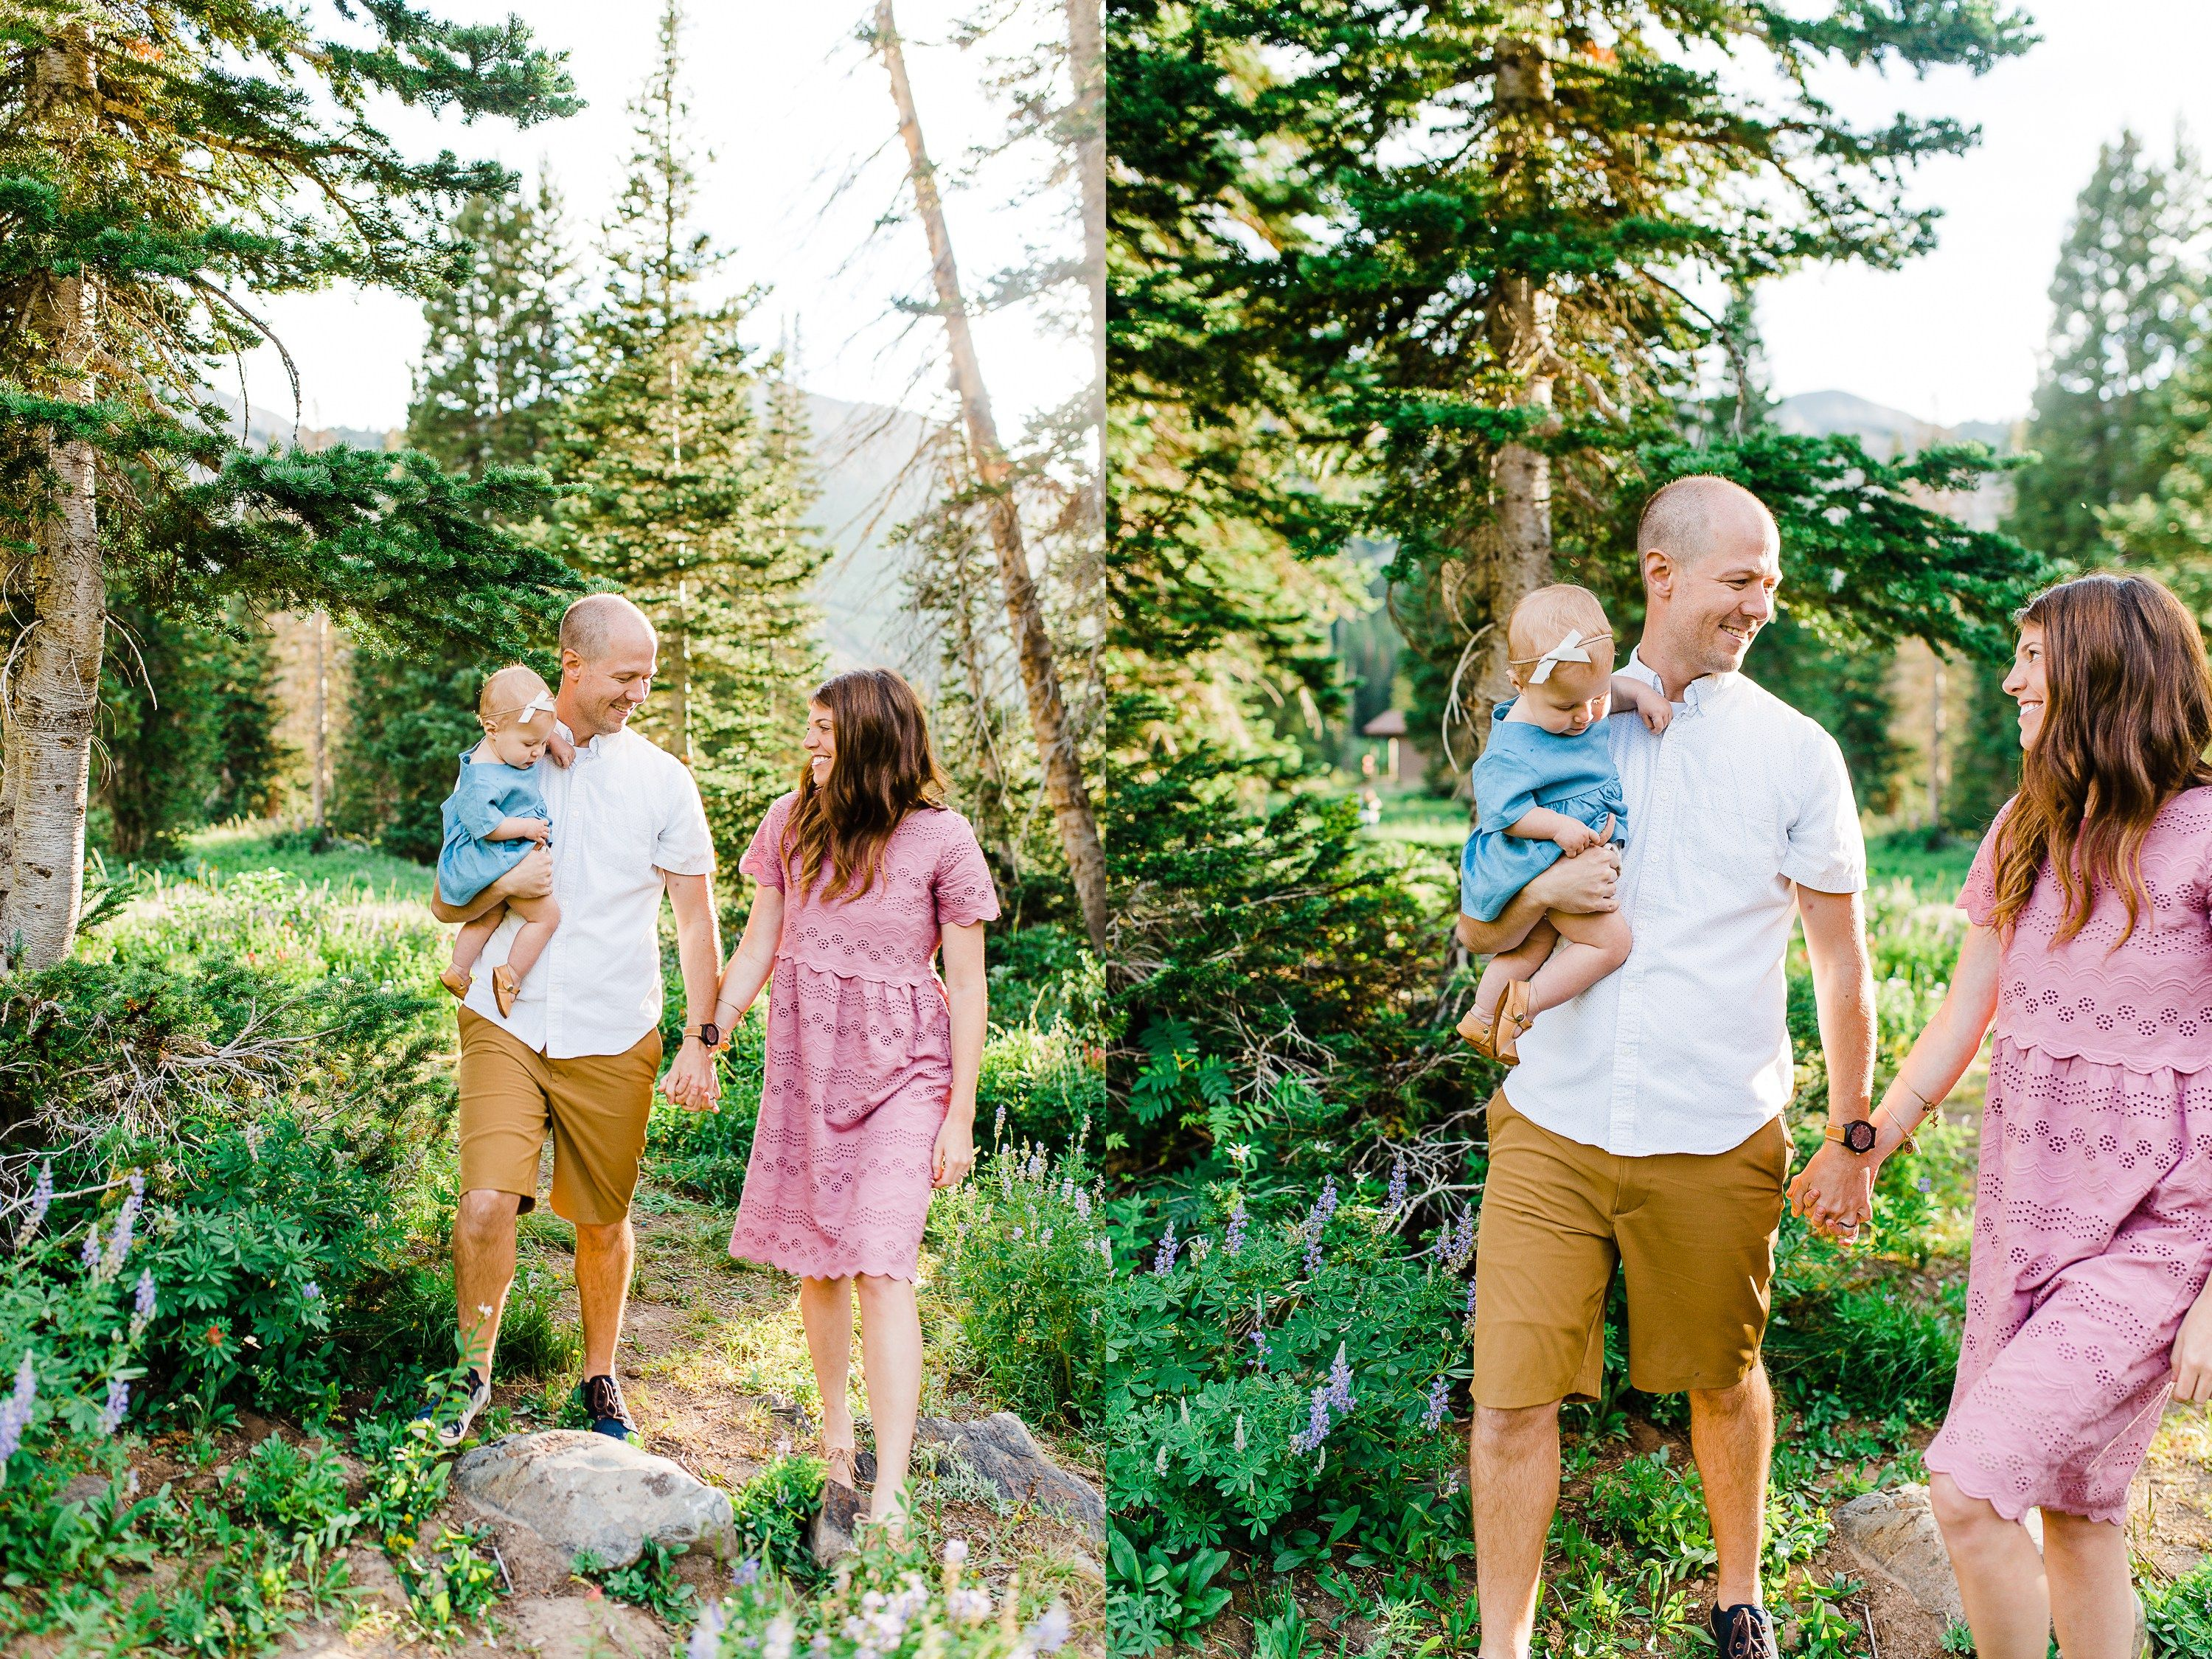 Spooner Family | Albion basin, Utah and Summer family pictures